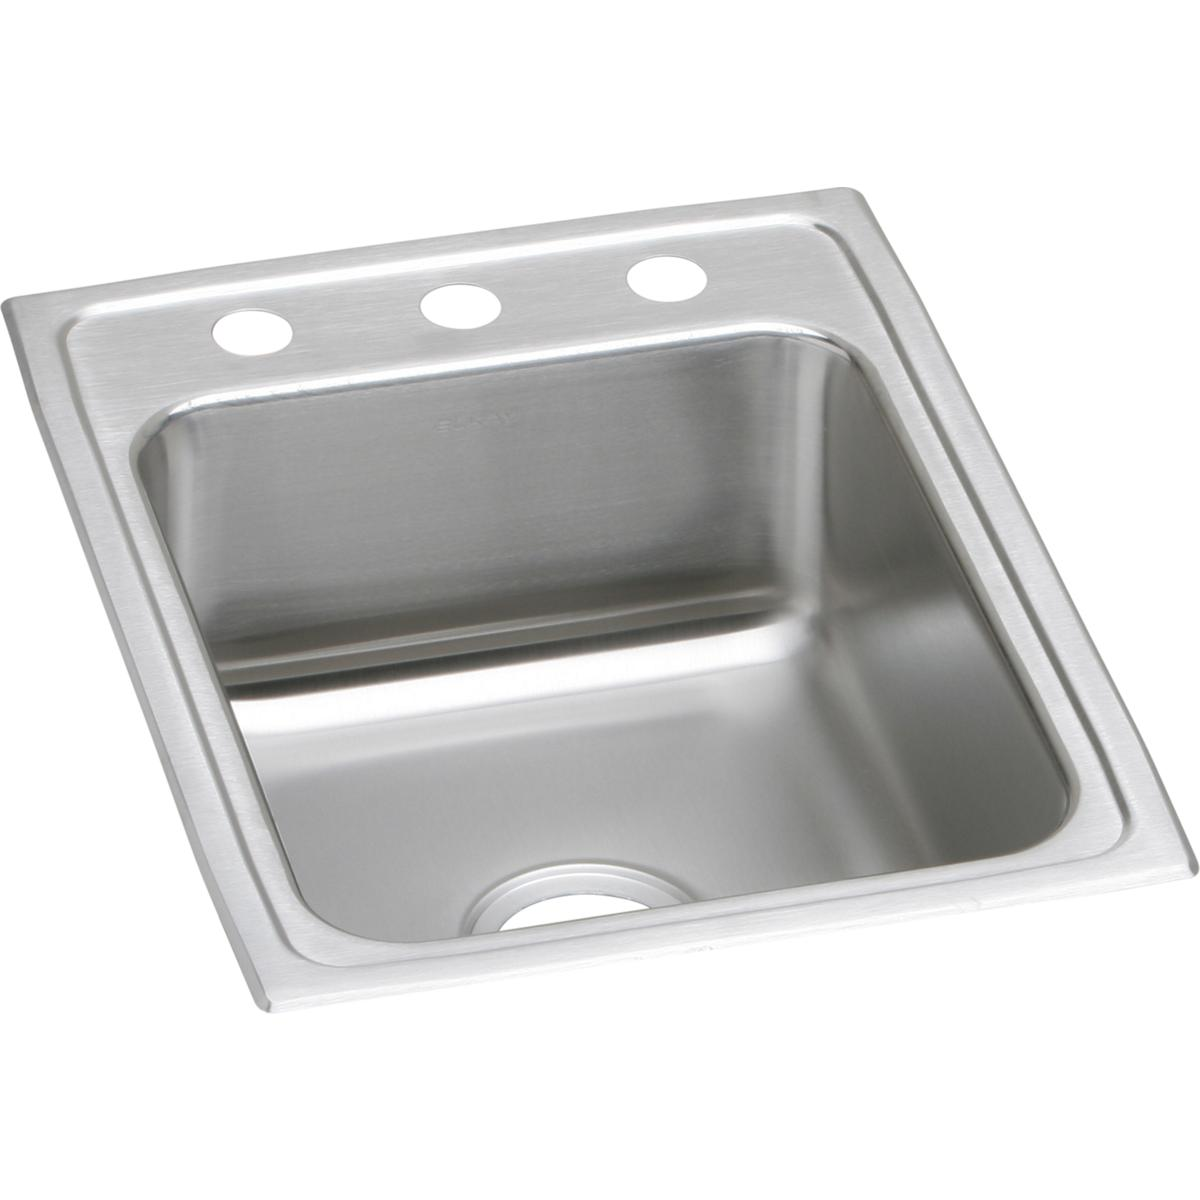 "Elkay Lustertone Classic Stainless Steel 17"" x 22"" x 7-5/8"", Single Bowl Drop-in Sink"